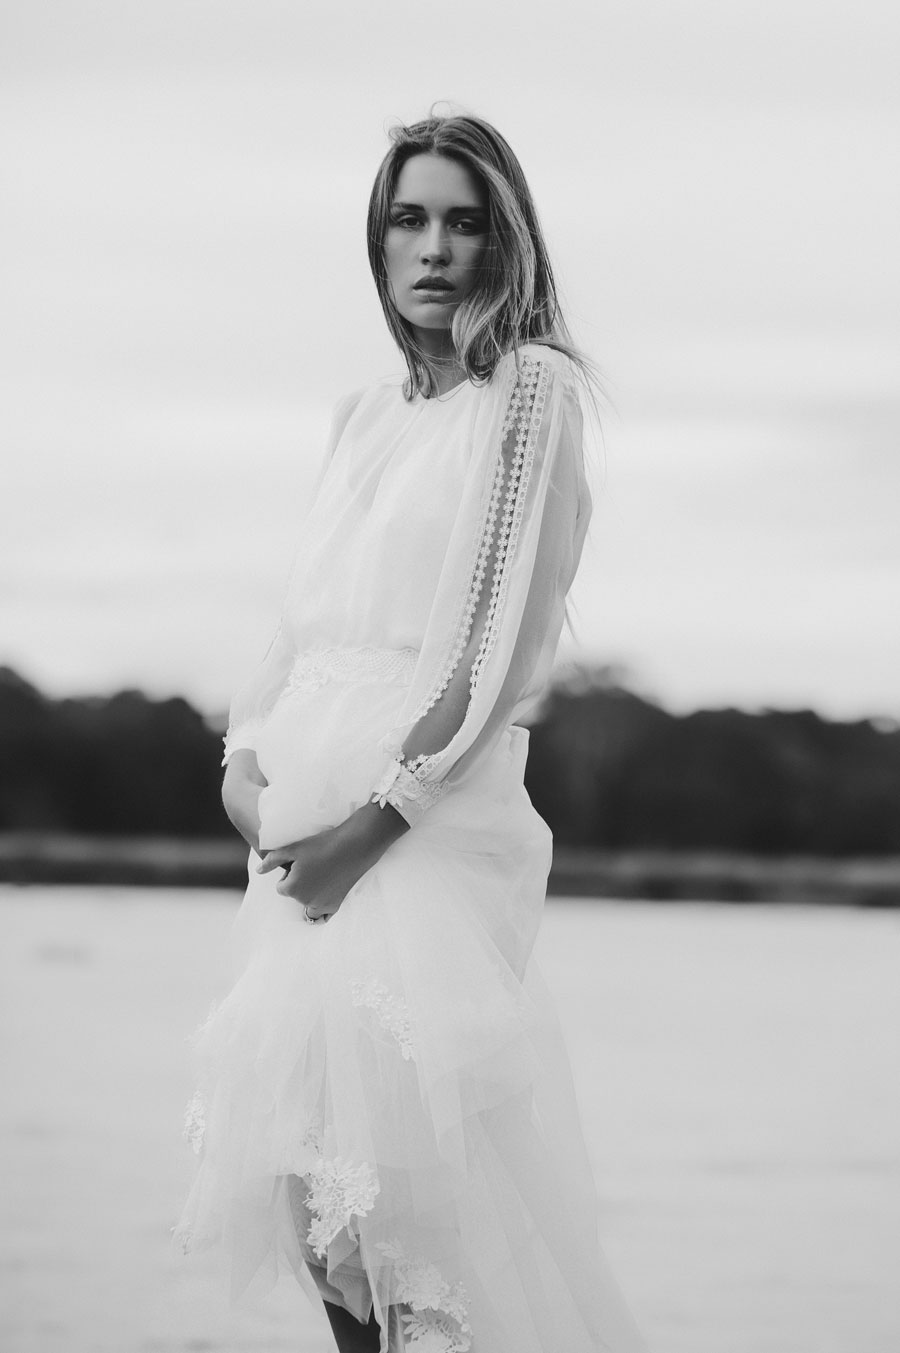 Wild Romance! A Bridal Separates Collection by Cathleen Jia